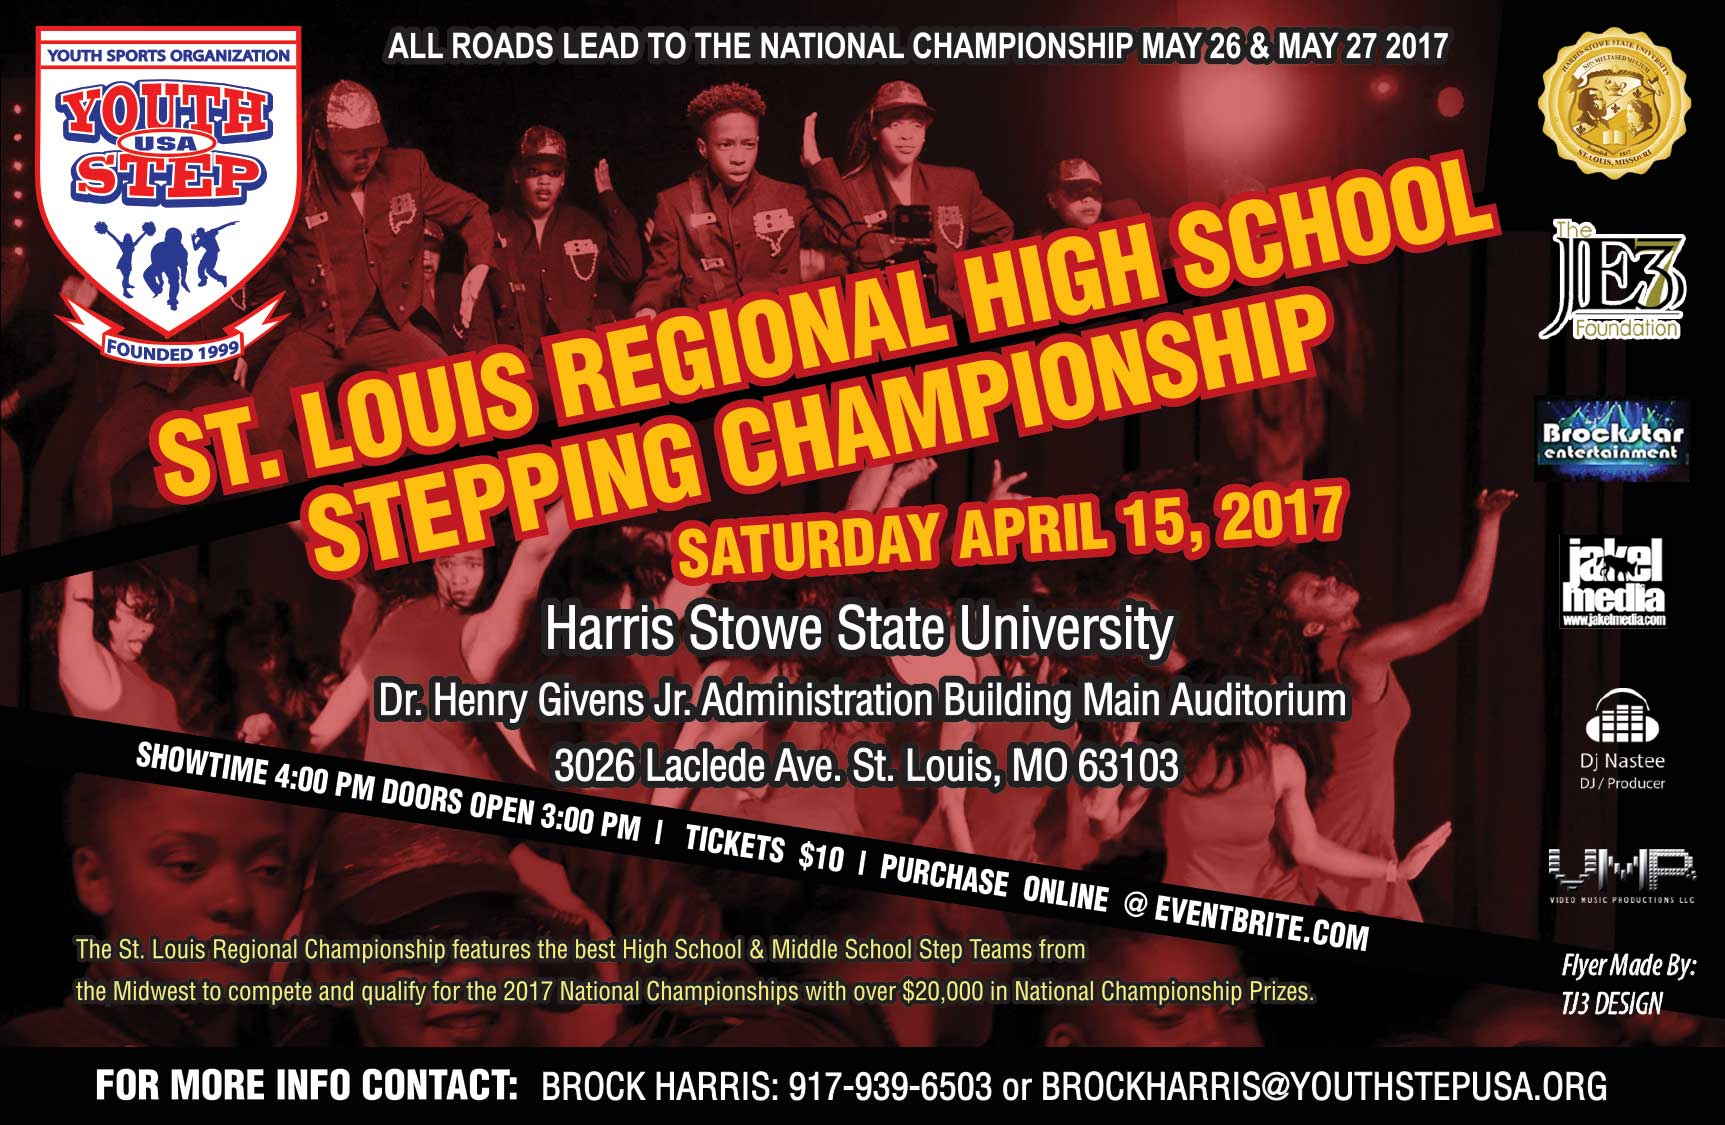 St. Louis Regional Stepping CHampionship